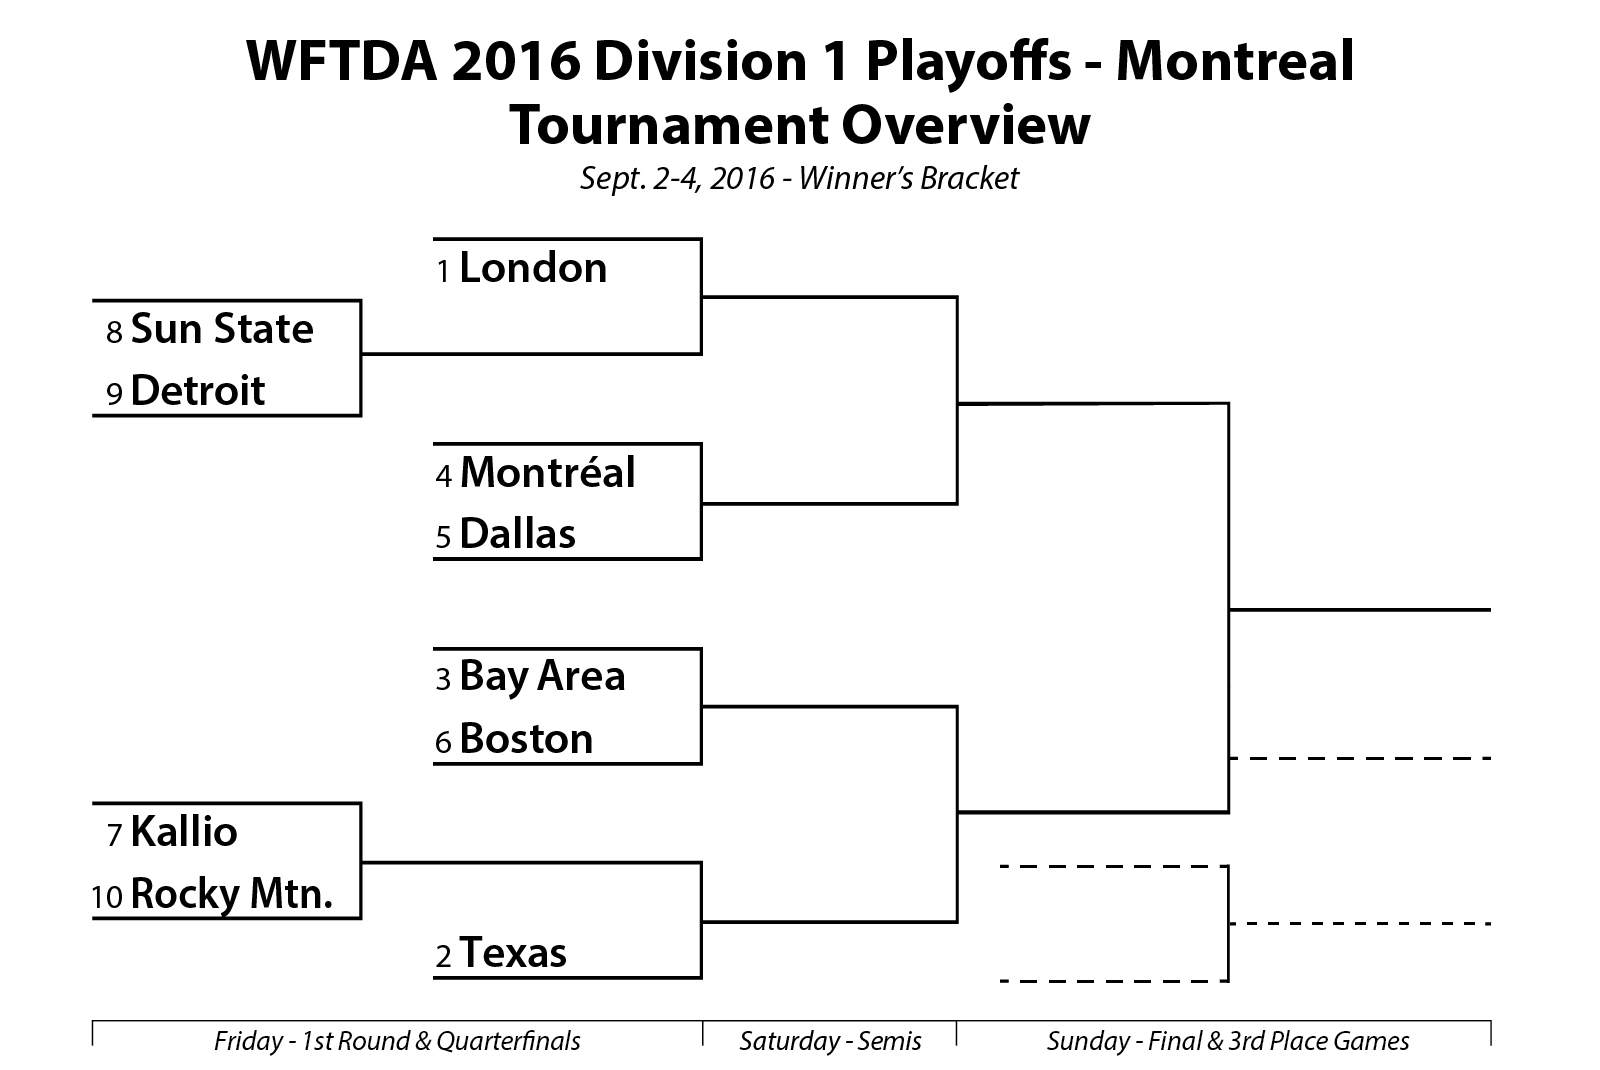 WFTDA-2016-Division-1-Playoffs-Montreal-Bracket